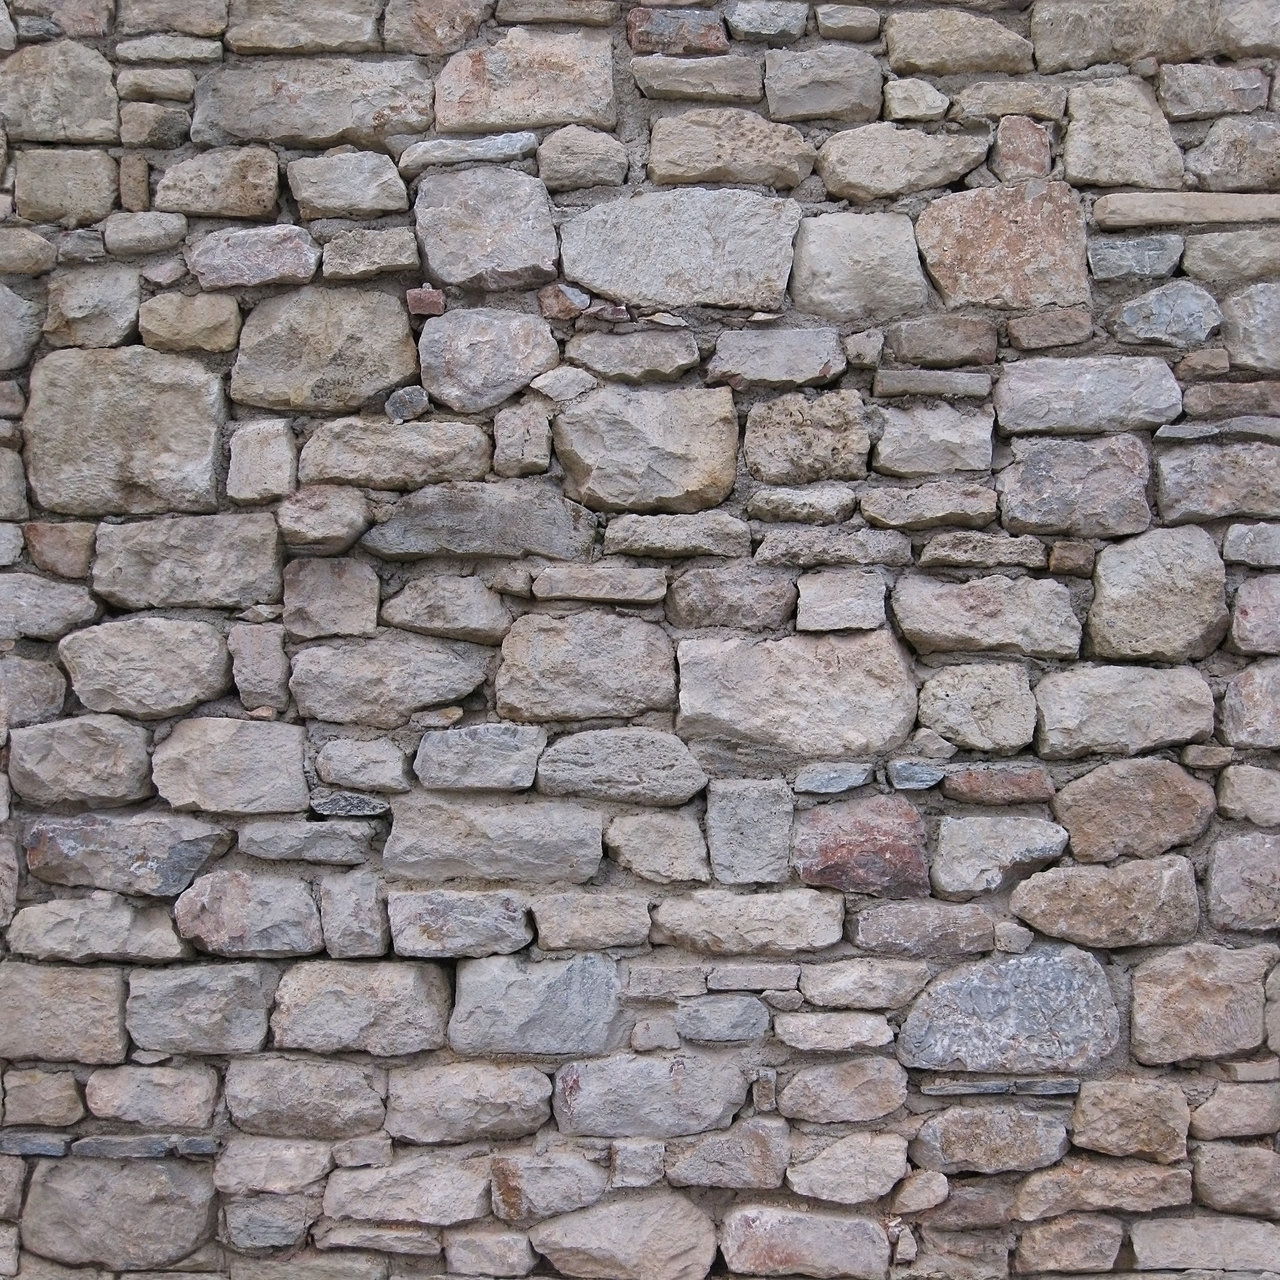 tileable_stone_wall_texture01_by_ftourini-d3le3to